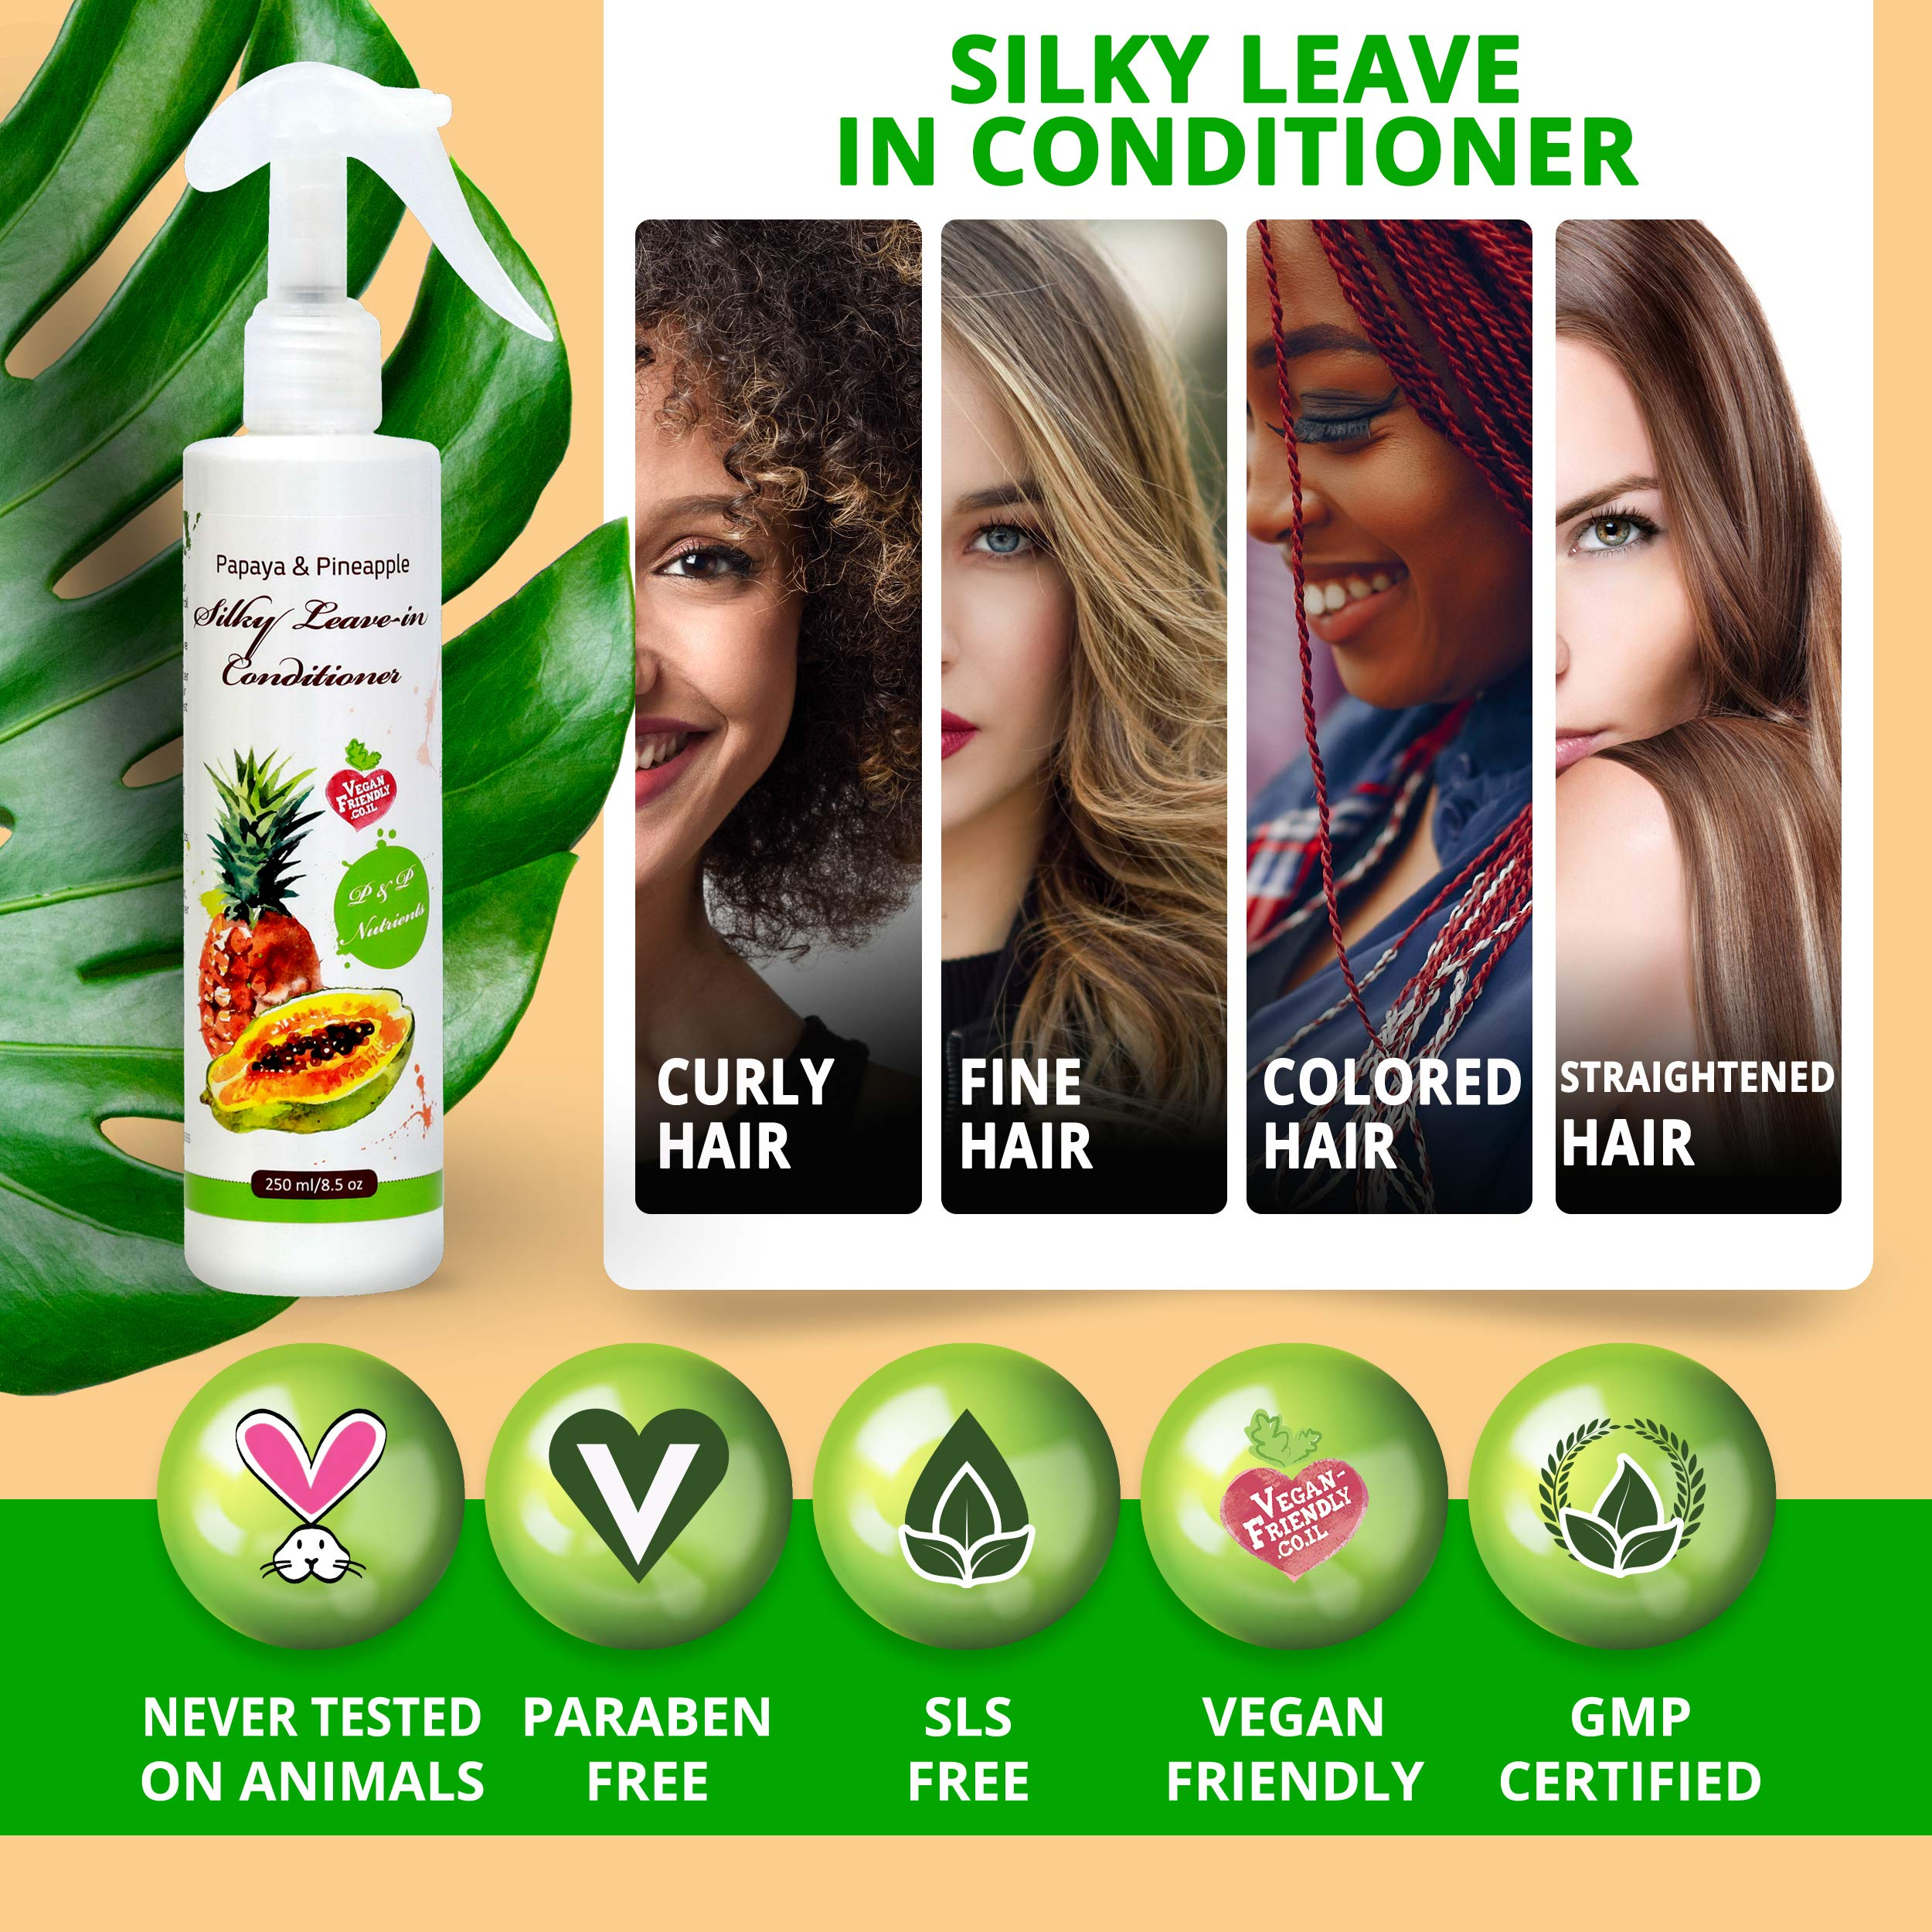 Papaya & Pineapple Natural Leave in Conditioner Spray for Dry and Damaged Hair Treatment| Anti-Frizz and Hair Detangler|Hair nourishment serum|Vegan|Paraben, SLS and Sulfate Free - 8.5 oz